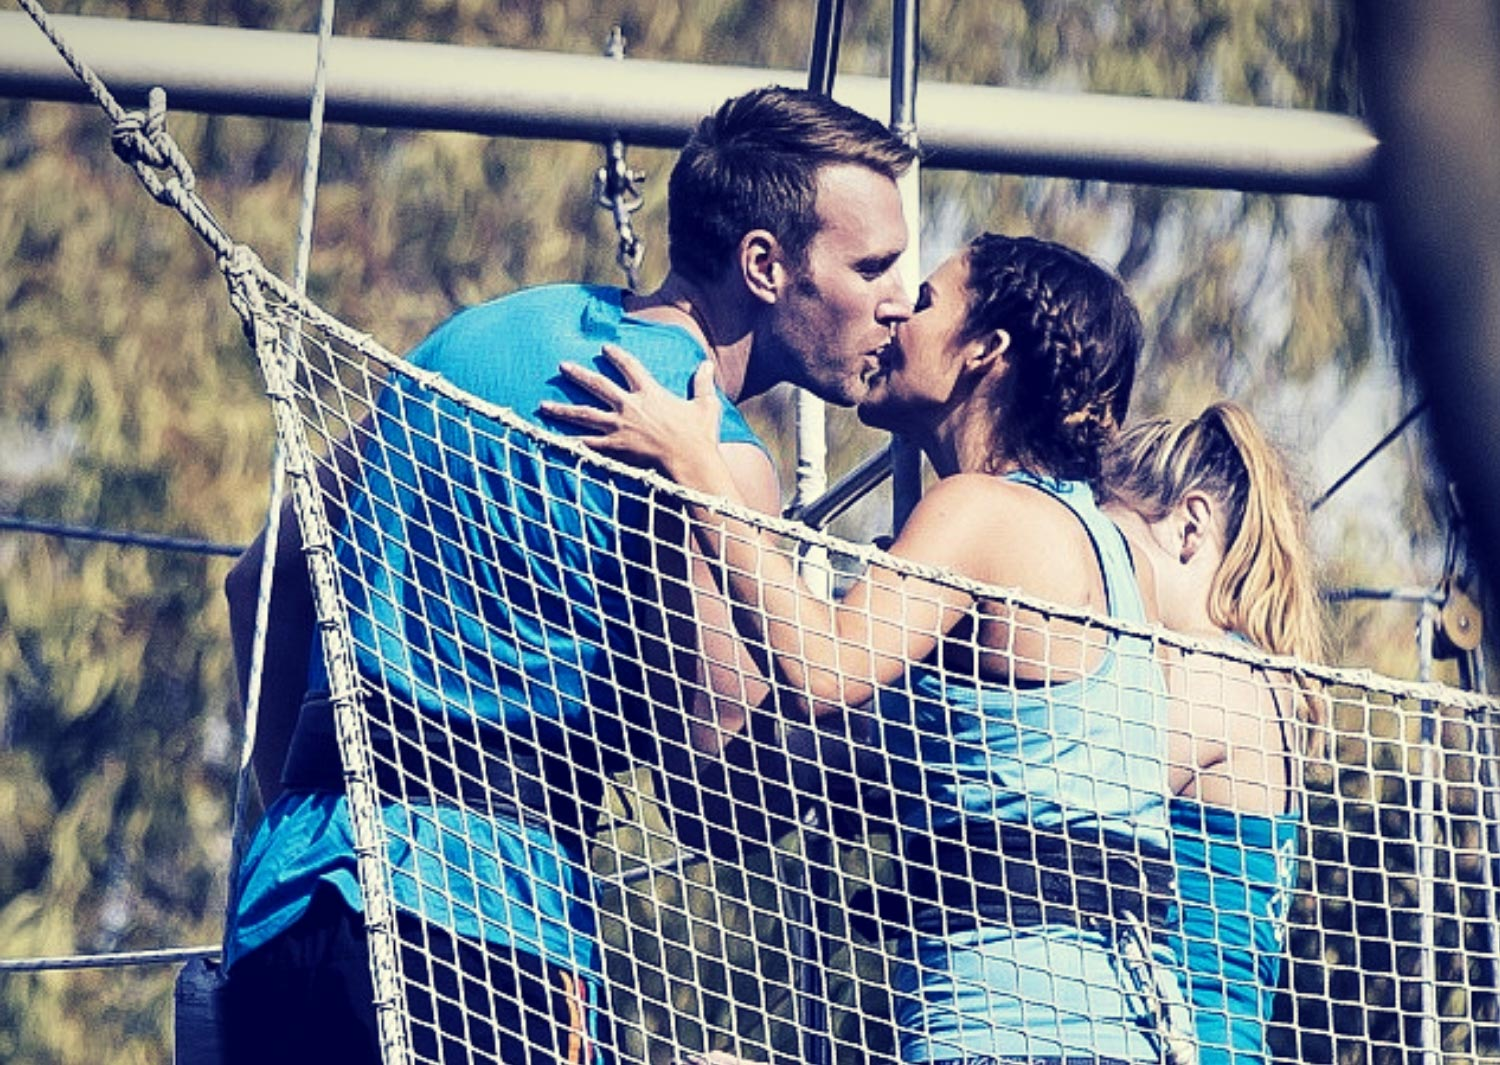 Kissing on the flying trapeze board Sydney